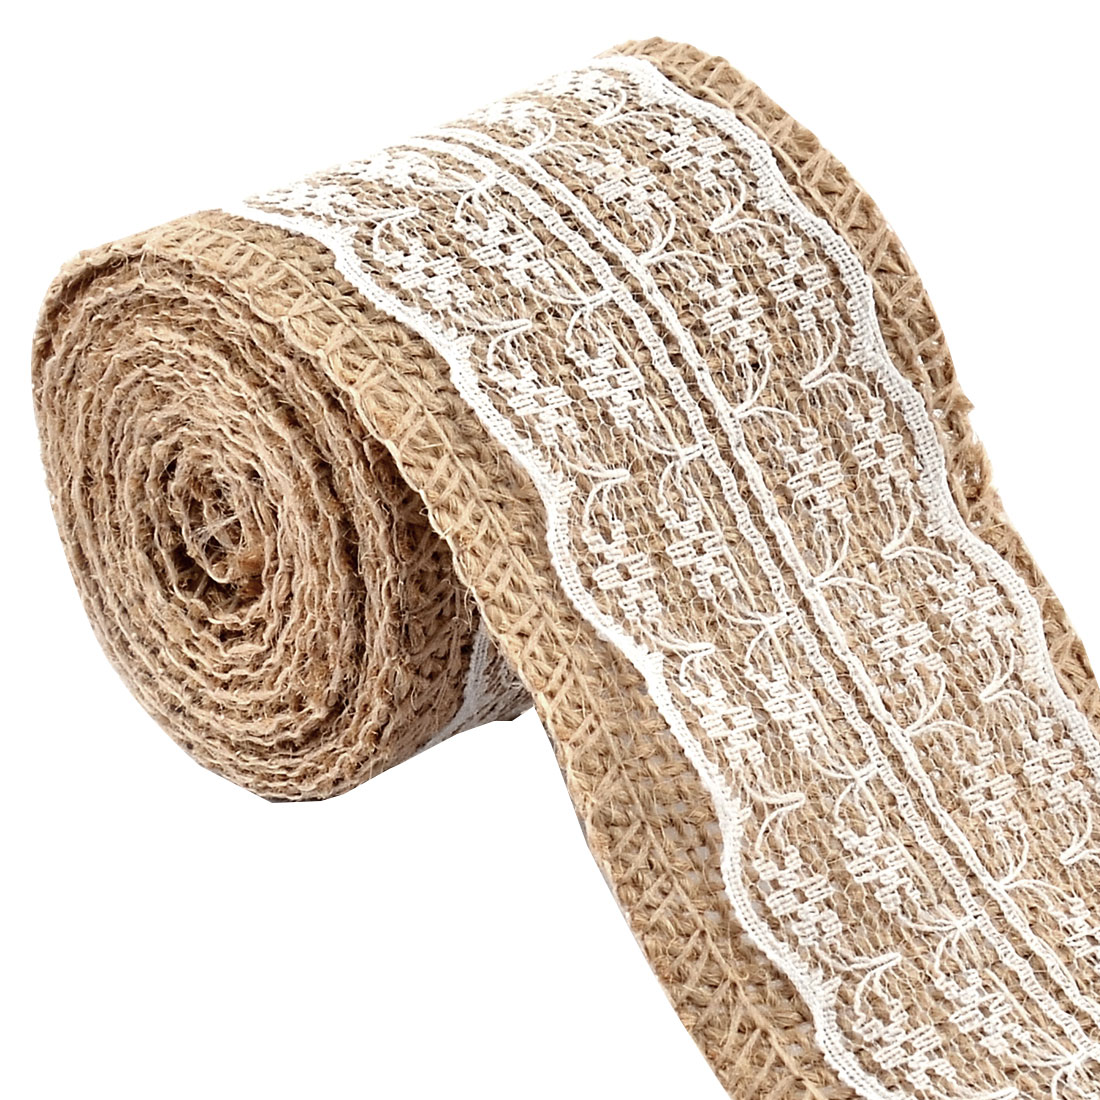 Burlap Art Crafting Lace Ribbon Roll White 2.2 Yards for Wedding Home Decor